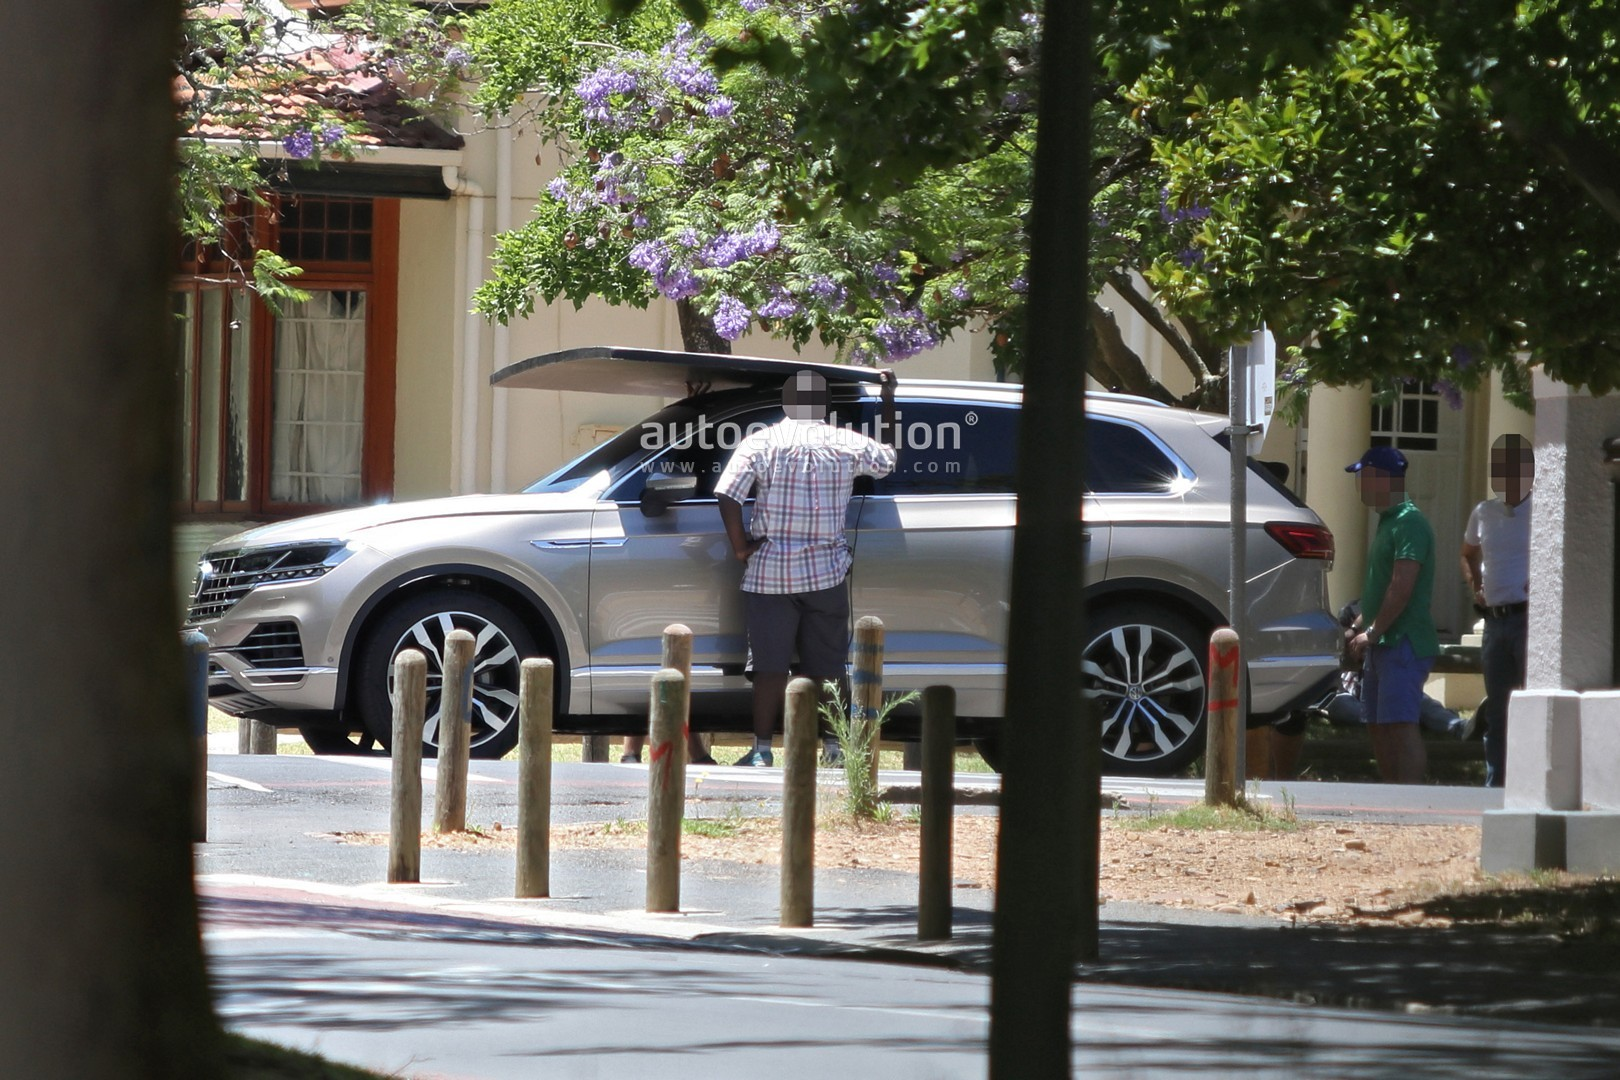 2019 Volkswagen Touareg Revealed in Full by Latest Spy Photos - autoevolution